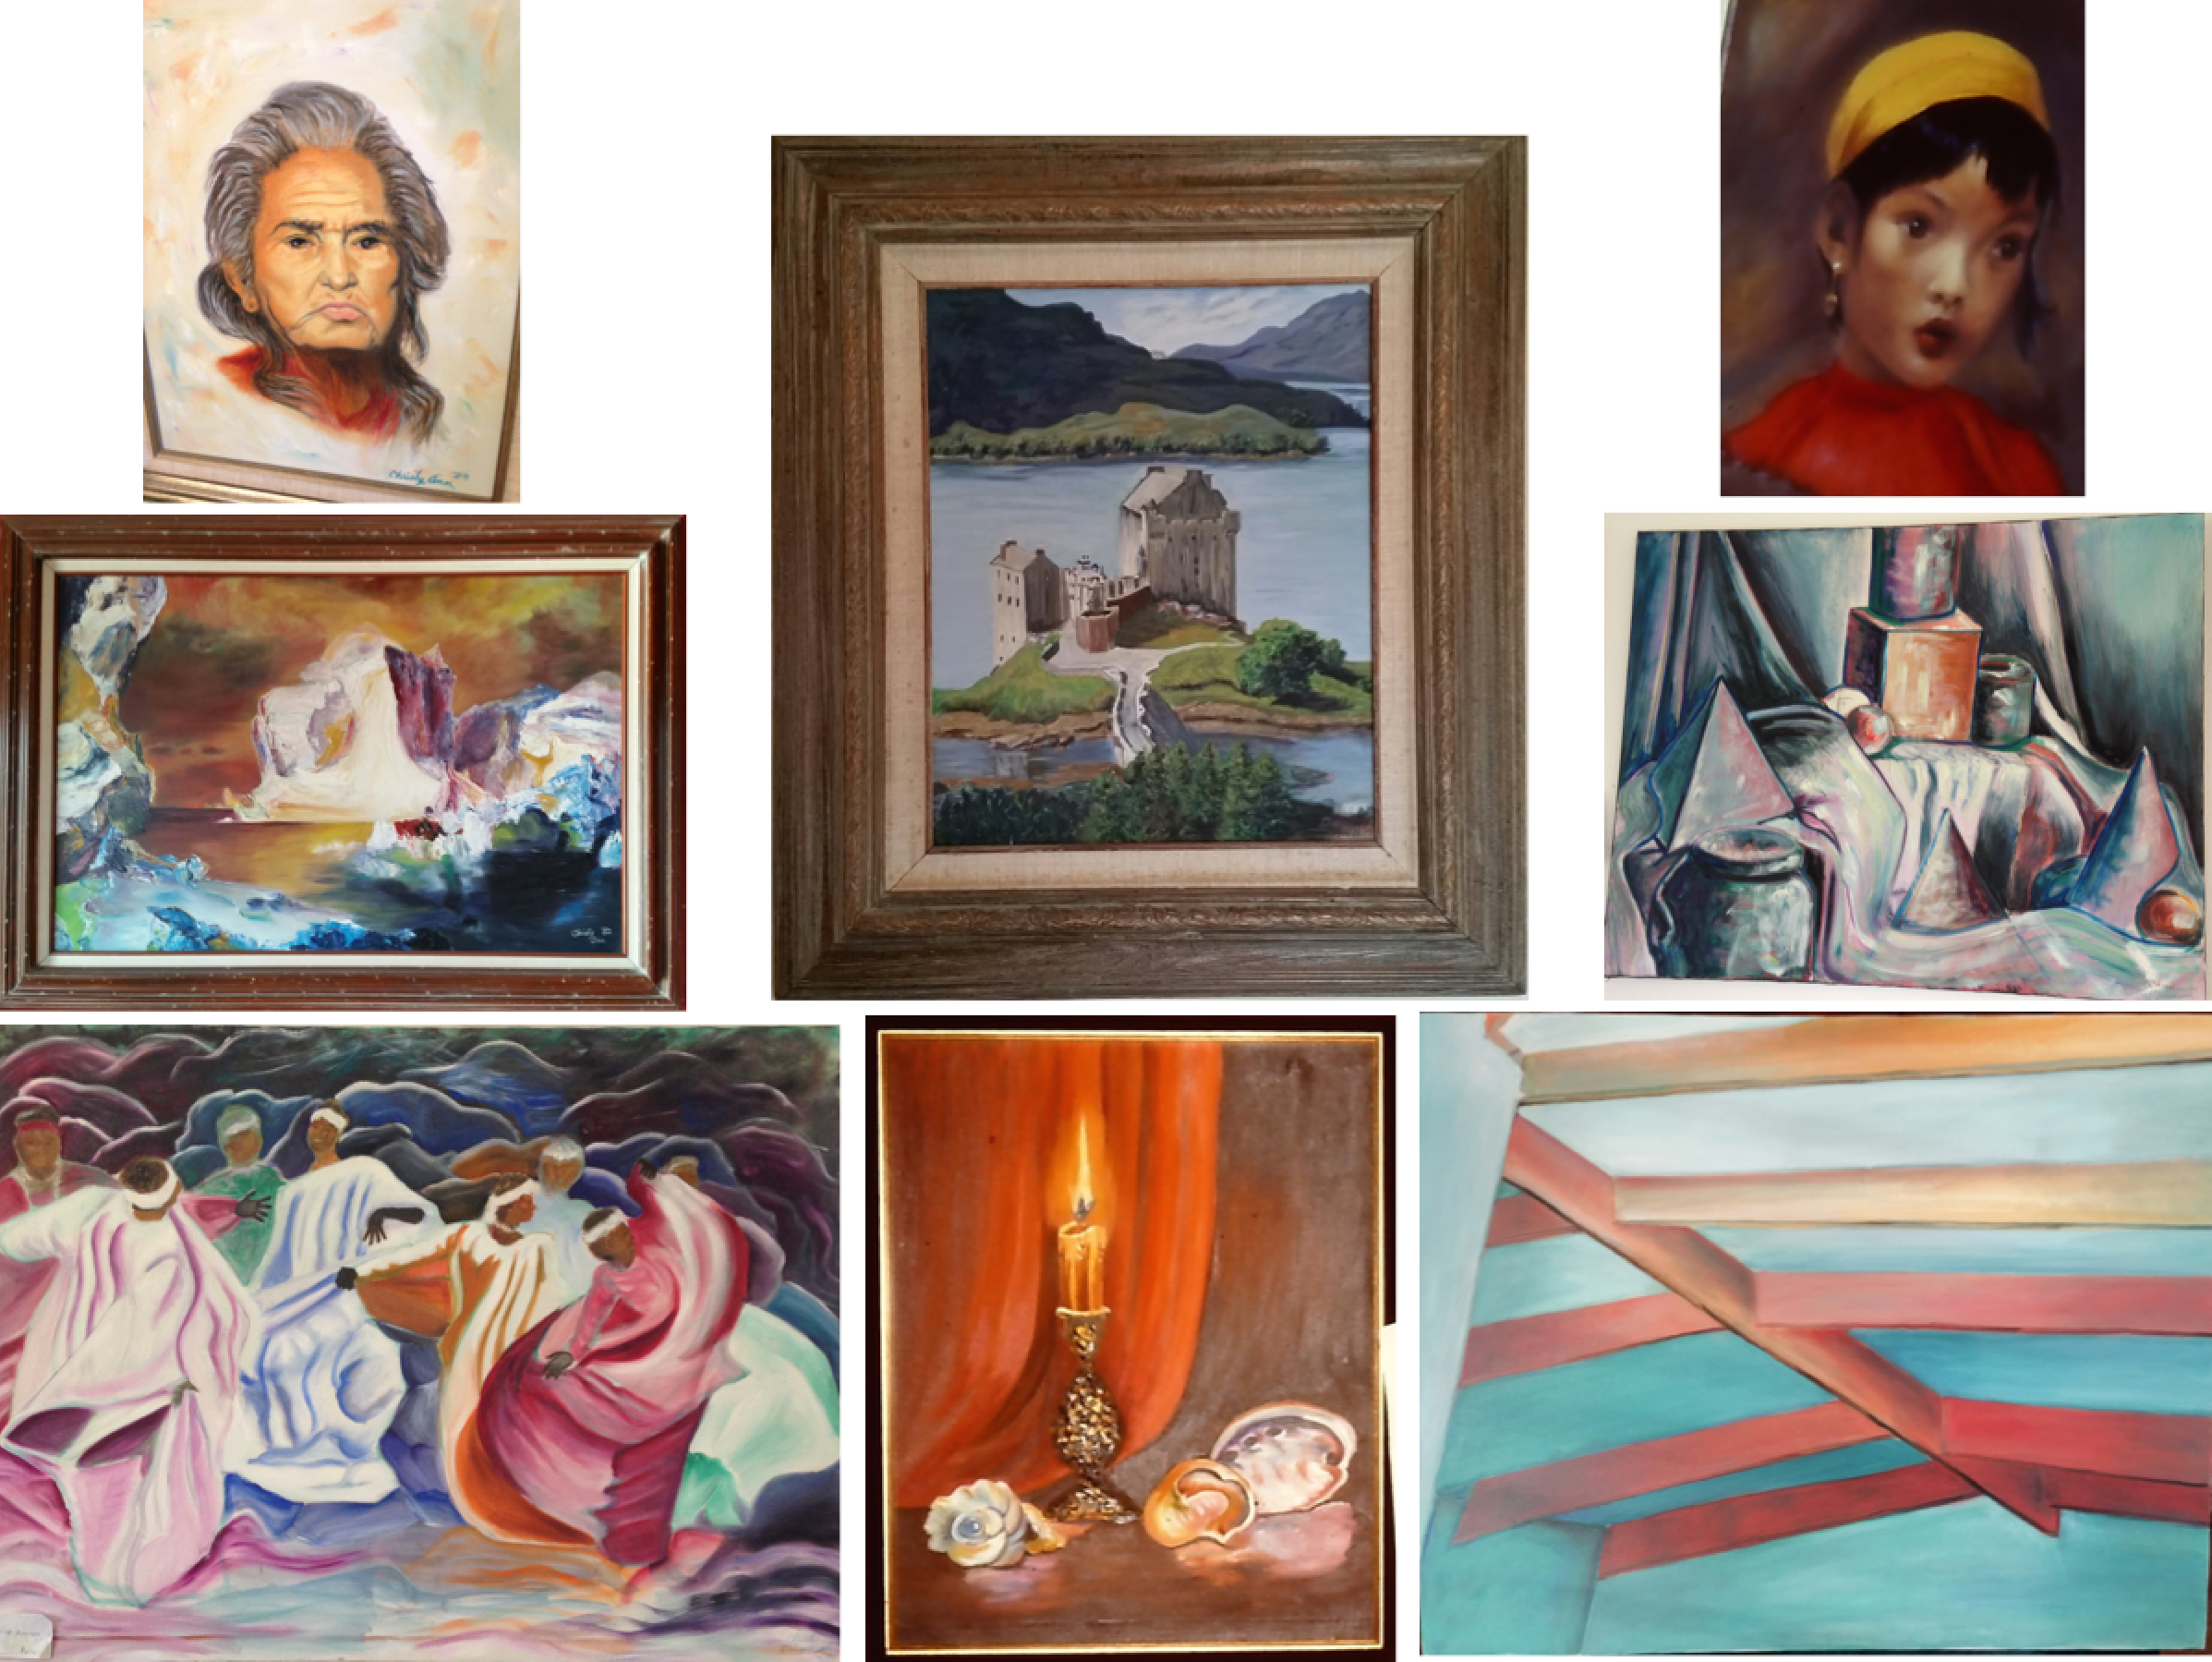 Left column:  Chief Dan George, variation on Frederic Edwin Church's  The Icebergs , and  Native Rhythm by Christy Ann Watenpaugh                                                                             Middle column: Eilean Donan Castle  and Still life with shells and candle by Christy Ann Watenpaugh                                                                                                     Right column: National Geographic cover portrait, Study in White, and Ceiling beams by Christy Ann Watenpaugh